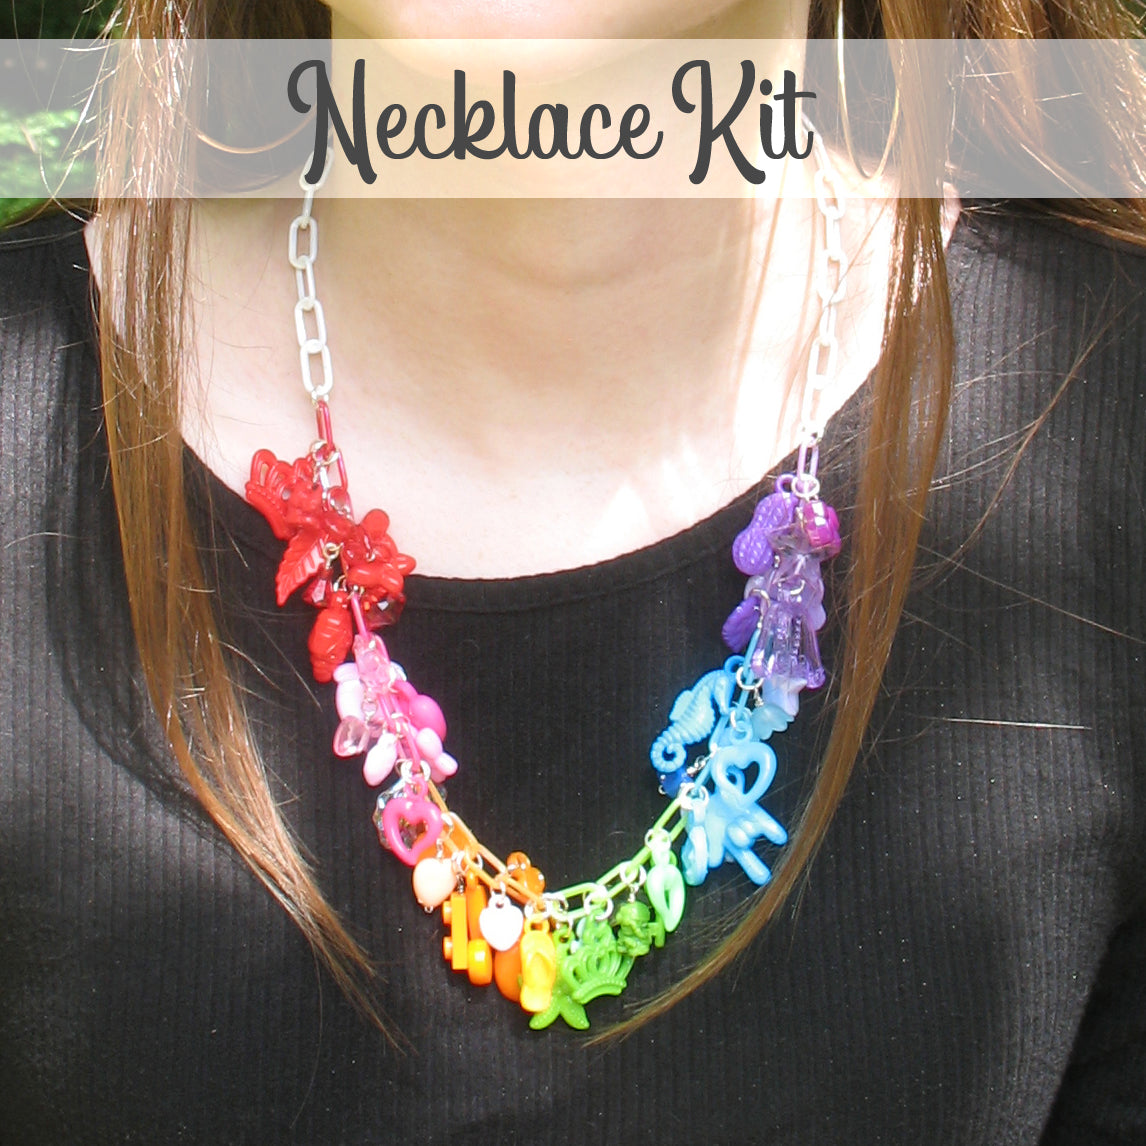 Acrylic Charm Necklace Kit - DIY Kawaii Kandi Rainbow Necklace - Adorabilities Charms